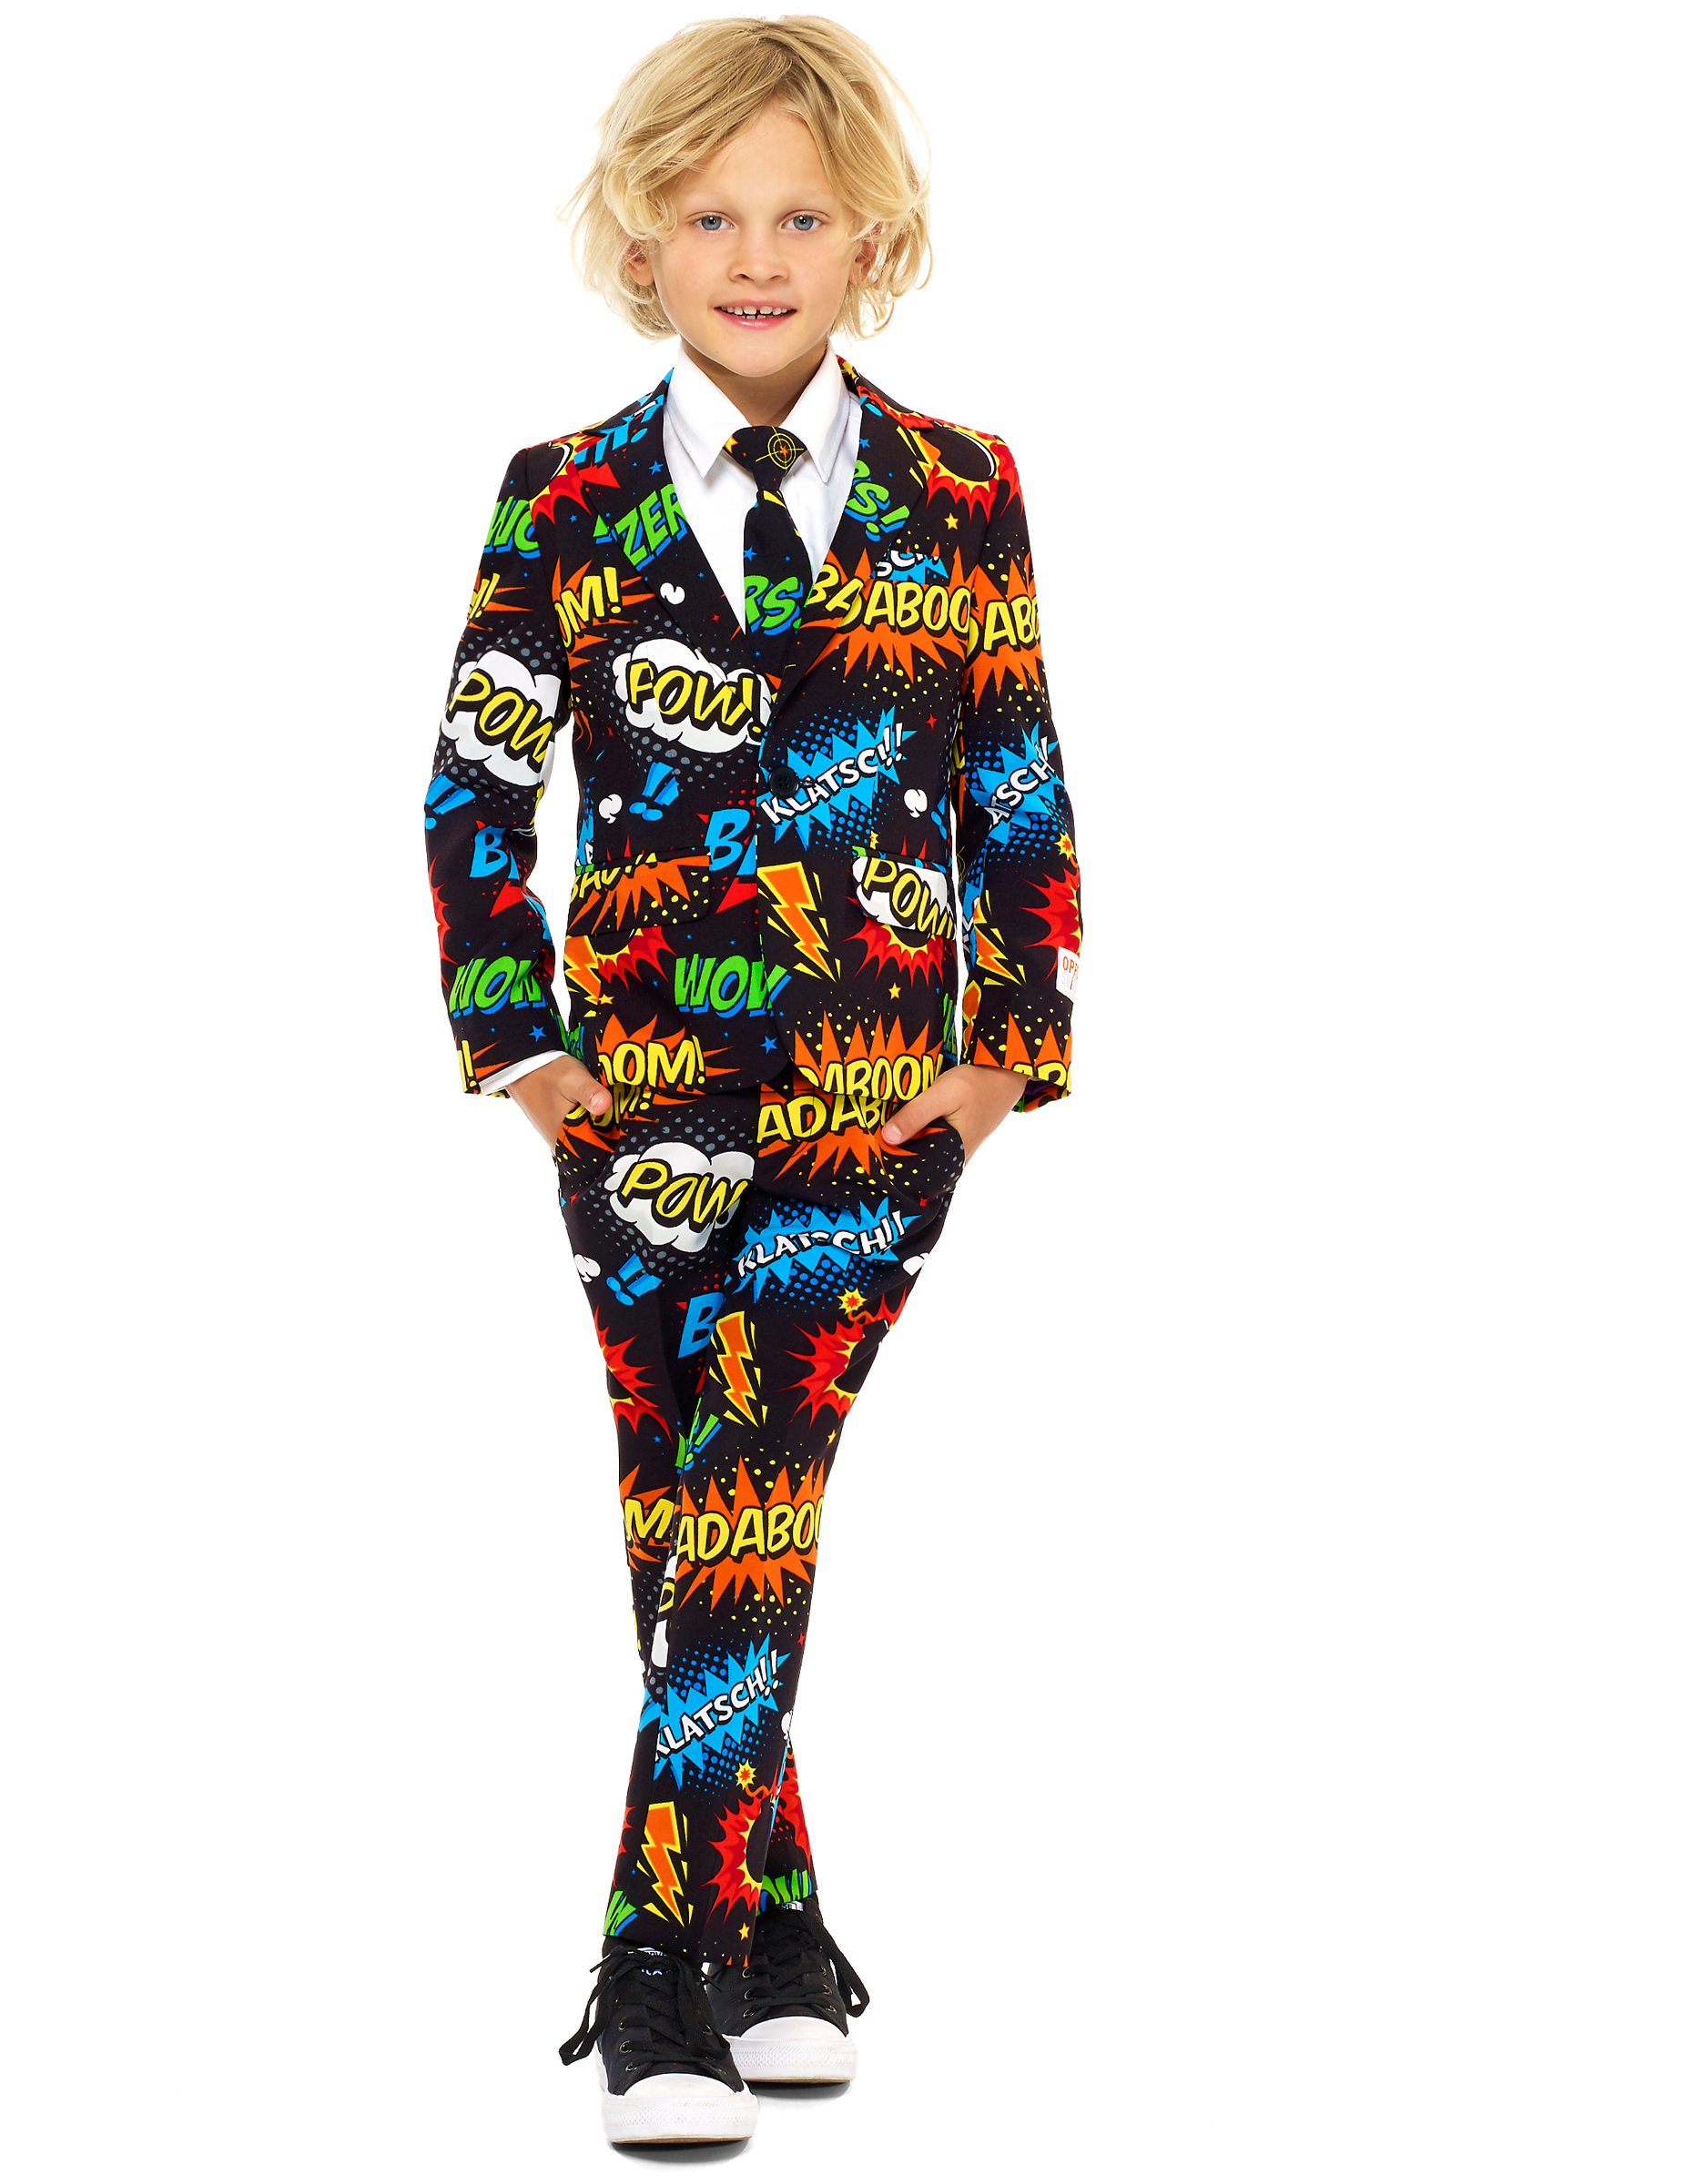 Opposuits Kinderkostum Mr Comic Fur Kinder Gunstige Faschings